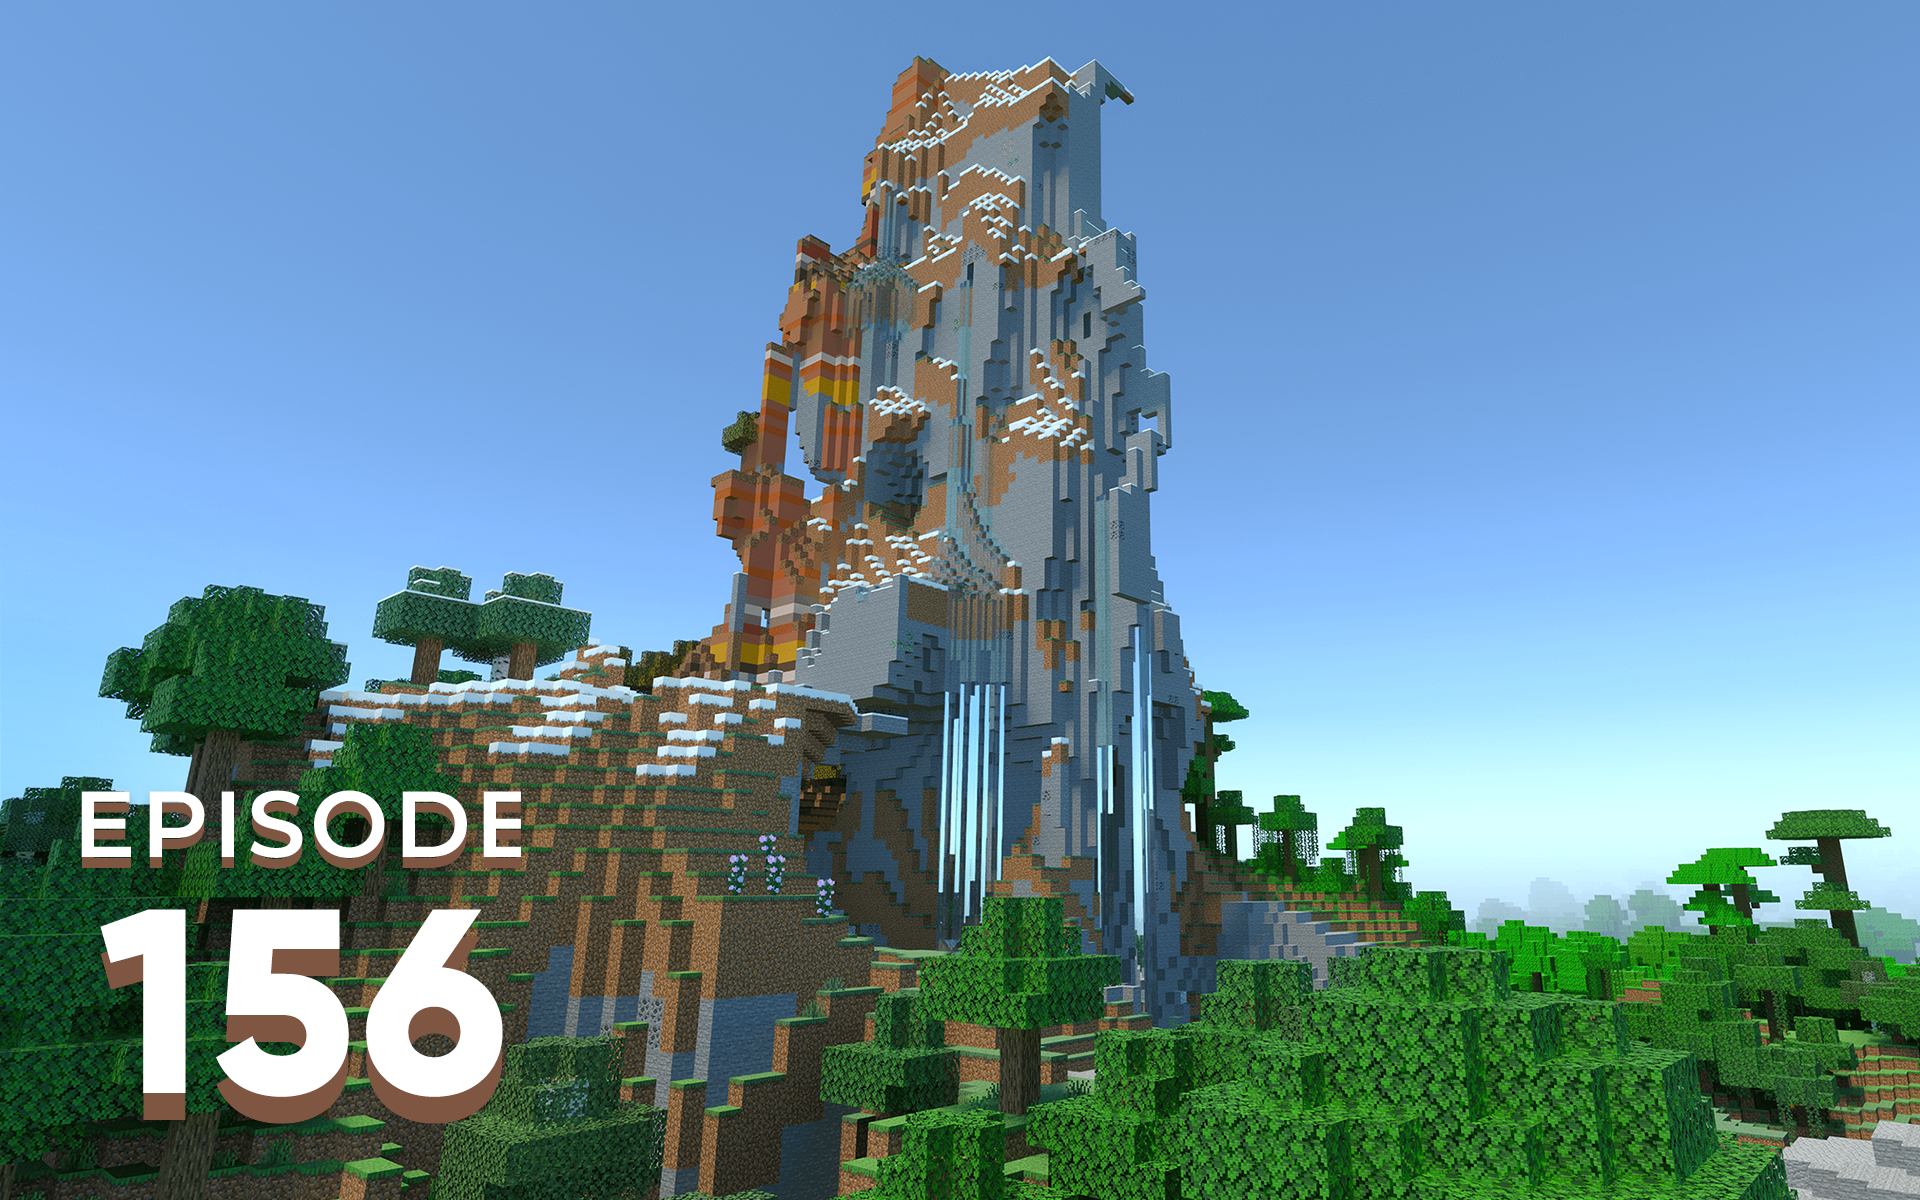 The Spawn Chunks 156: More Changes Spring Up